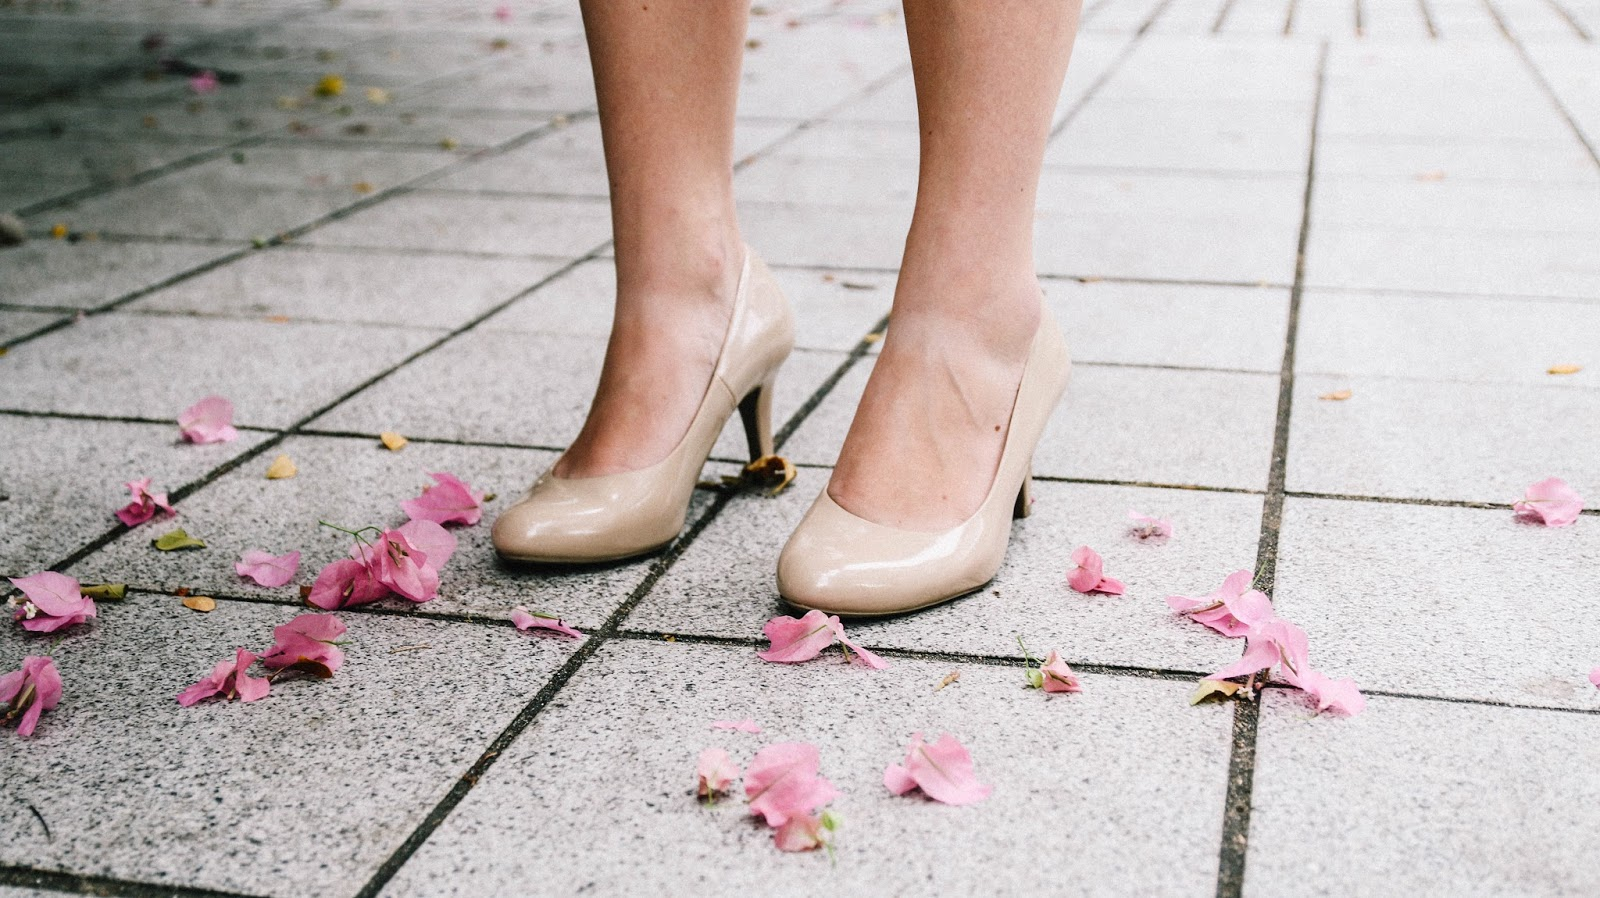 Only $12 nude heels for Valentines Day by GlobalFashionGal (Brianna Degaston)